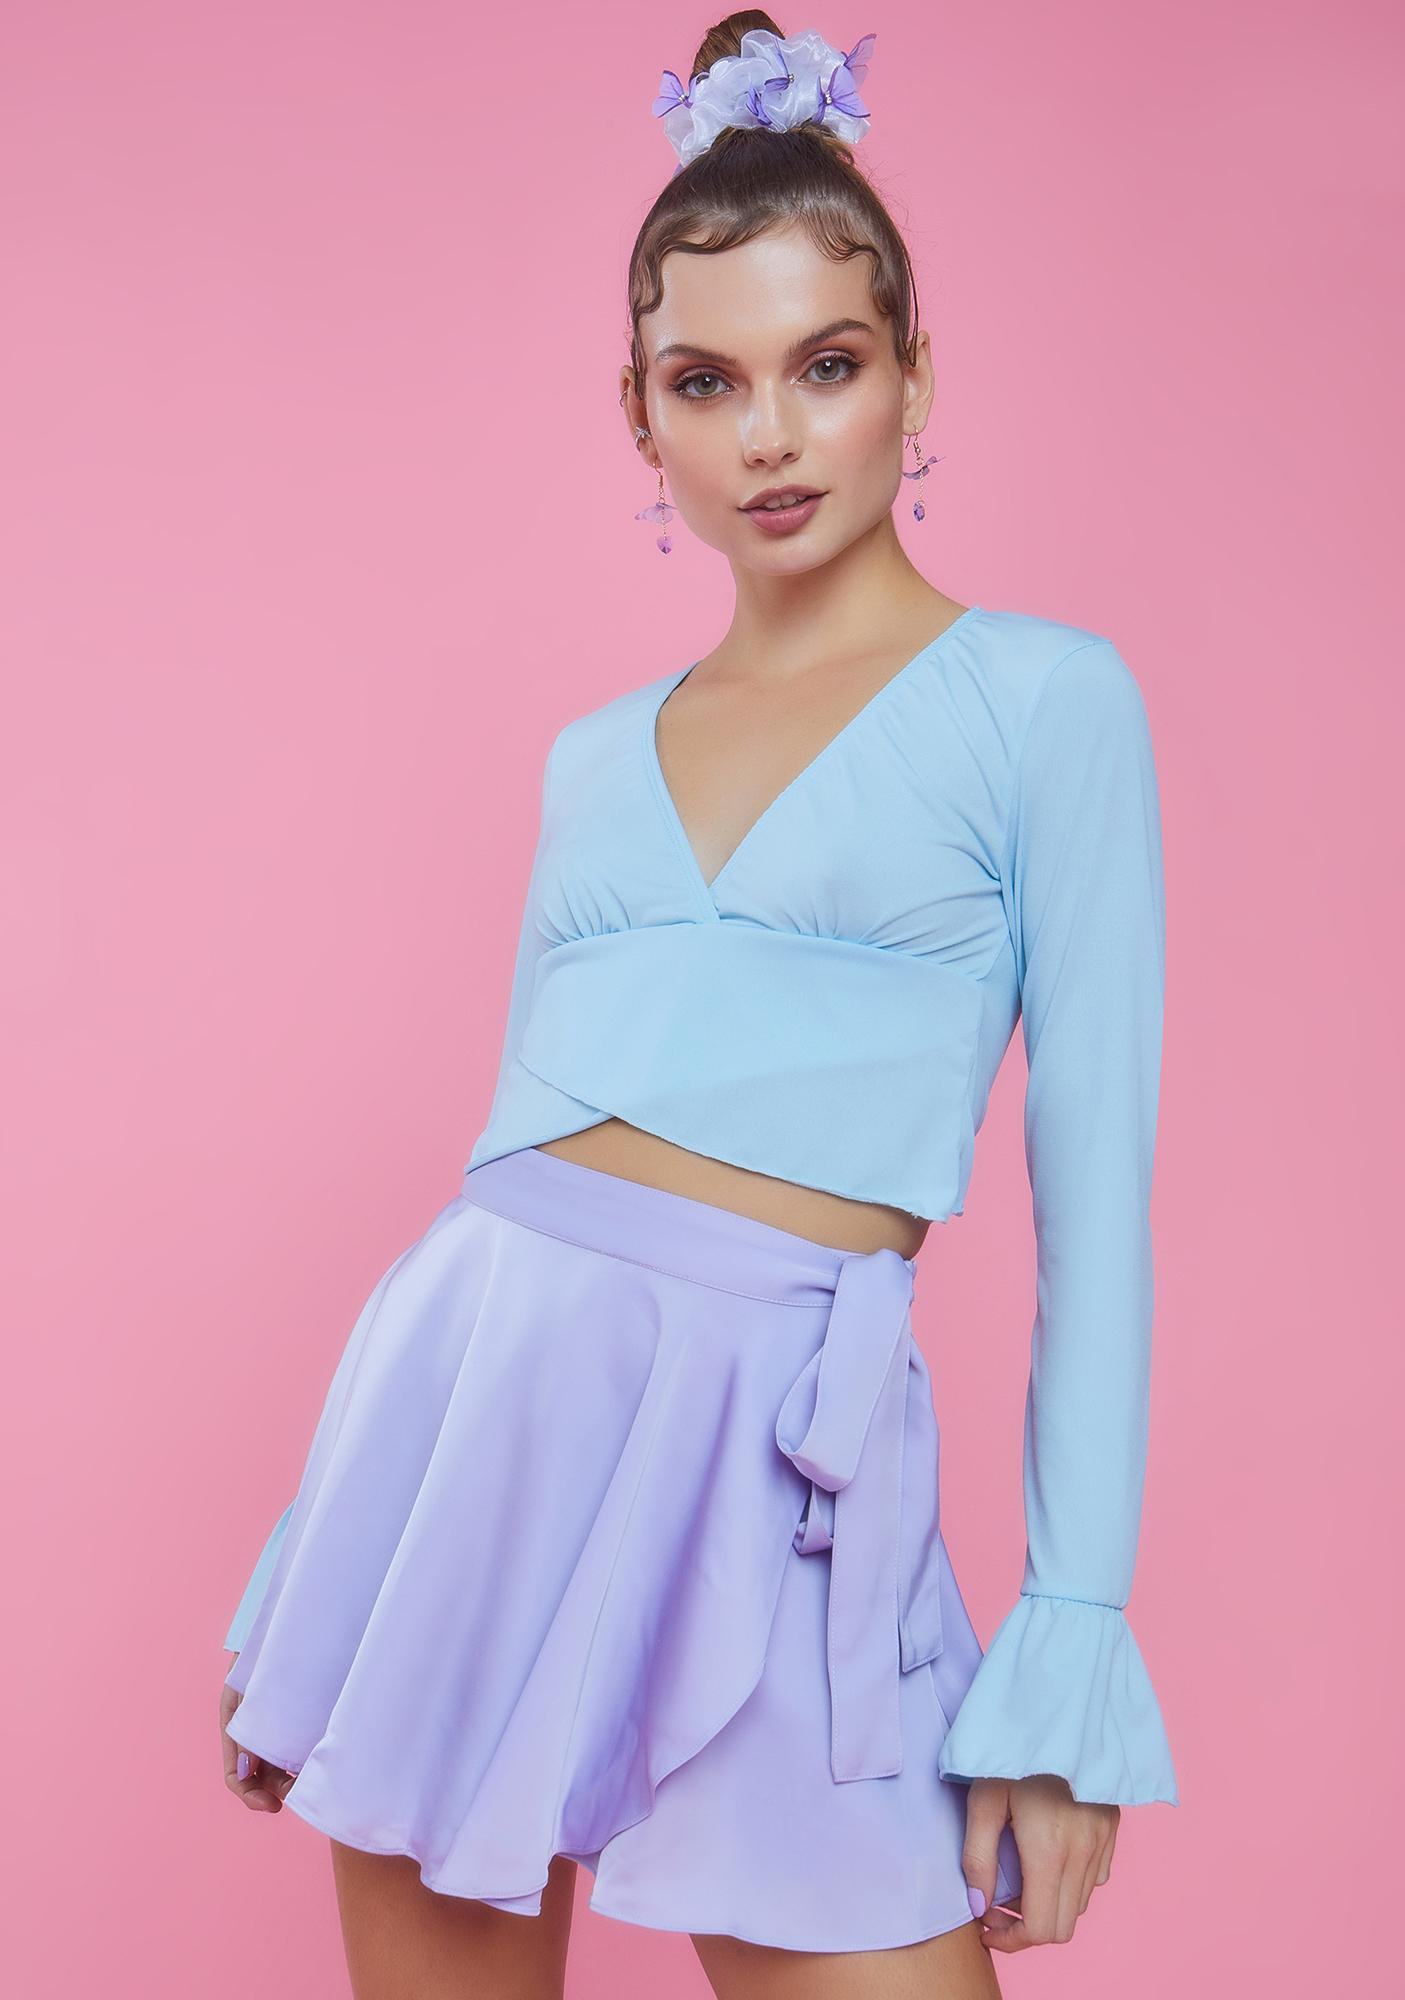 Sugar Thrillz Center Stage Ruffle Long Sleeve Top